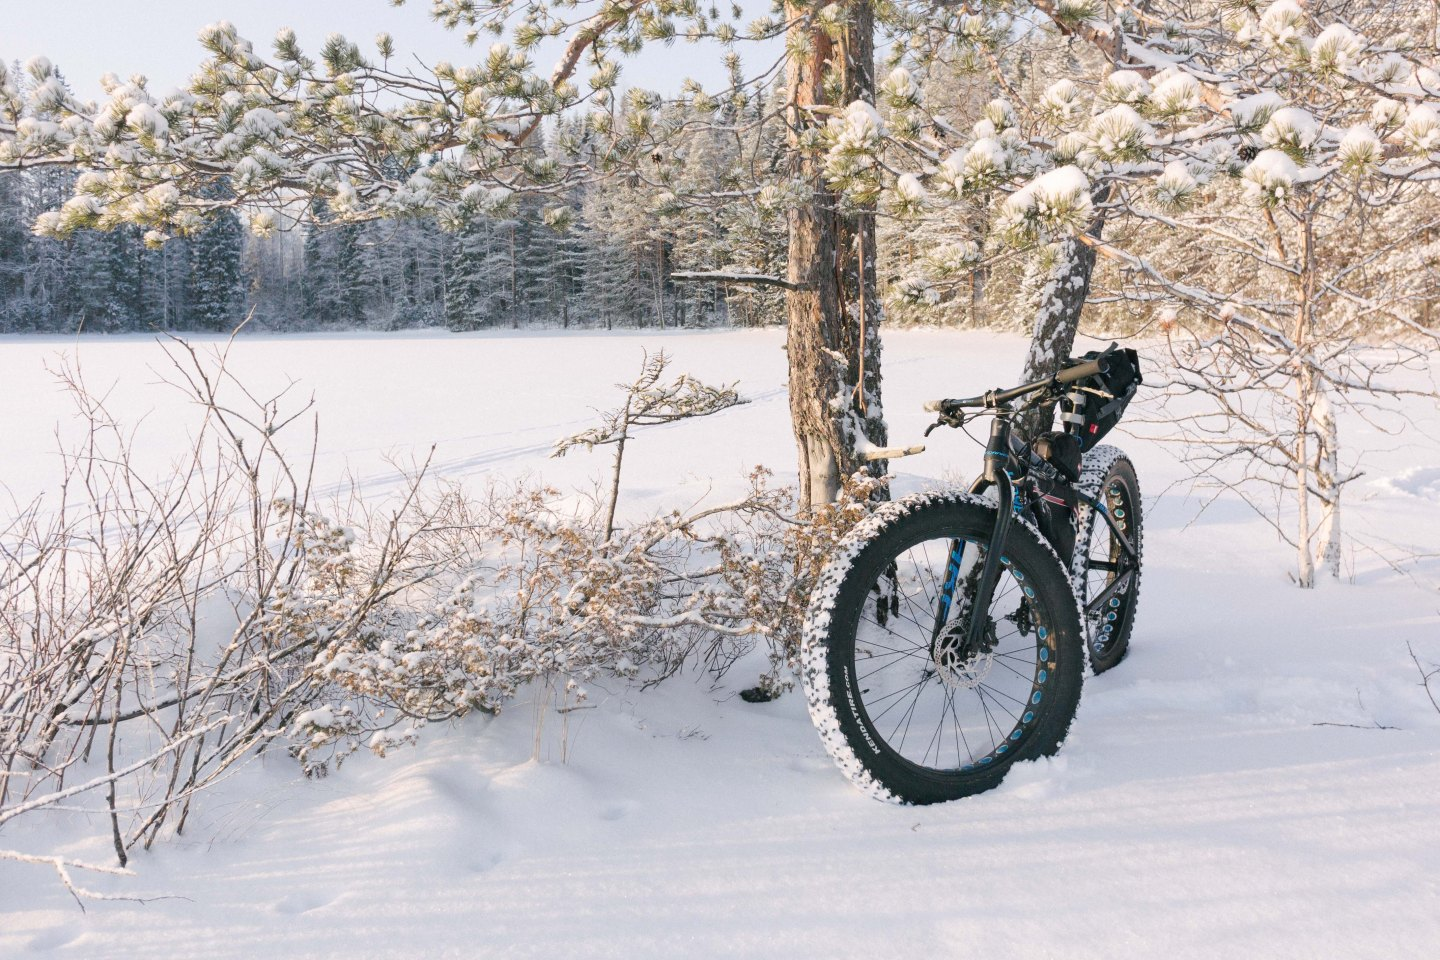 Biking in arctic winter